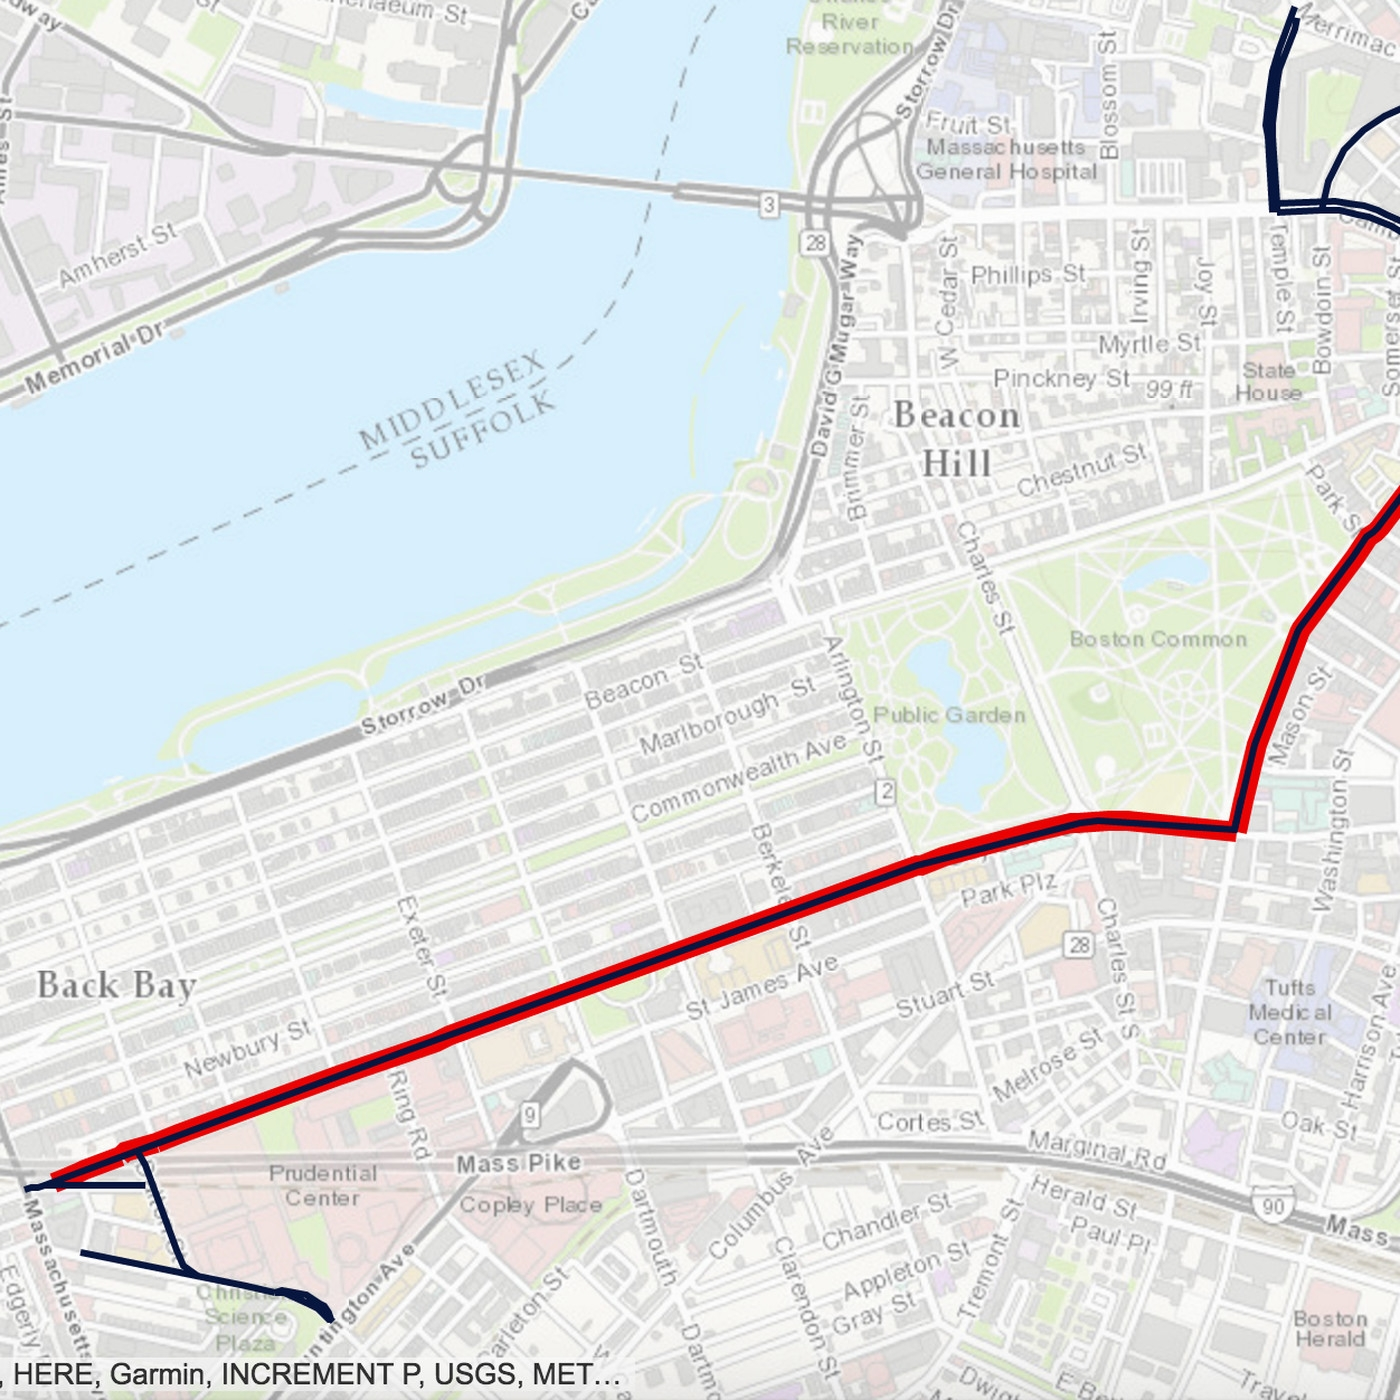 Patriots Super Bowl Parade 2017: Map, Route, And Road regarding Patriots Super Bowl Parade Map